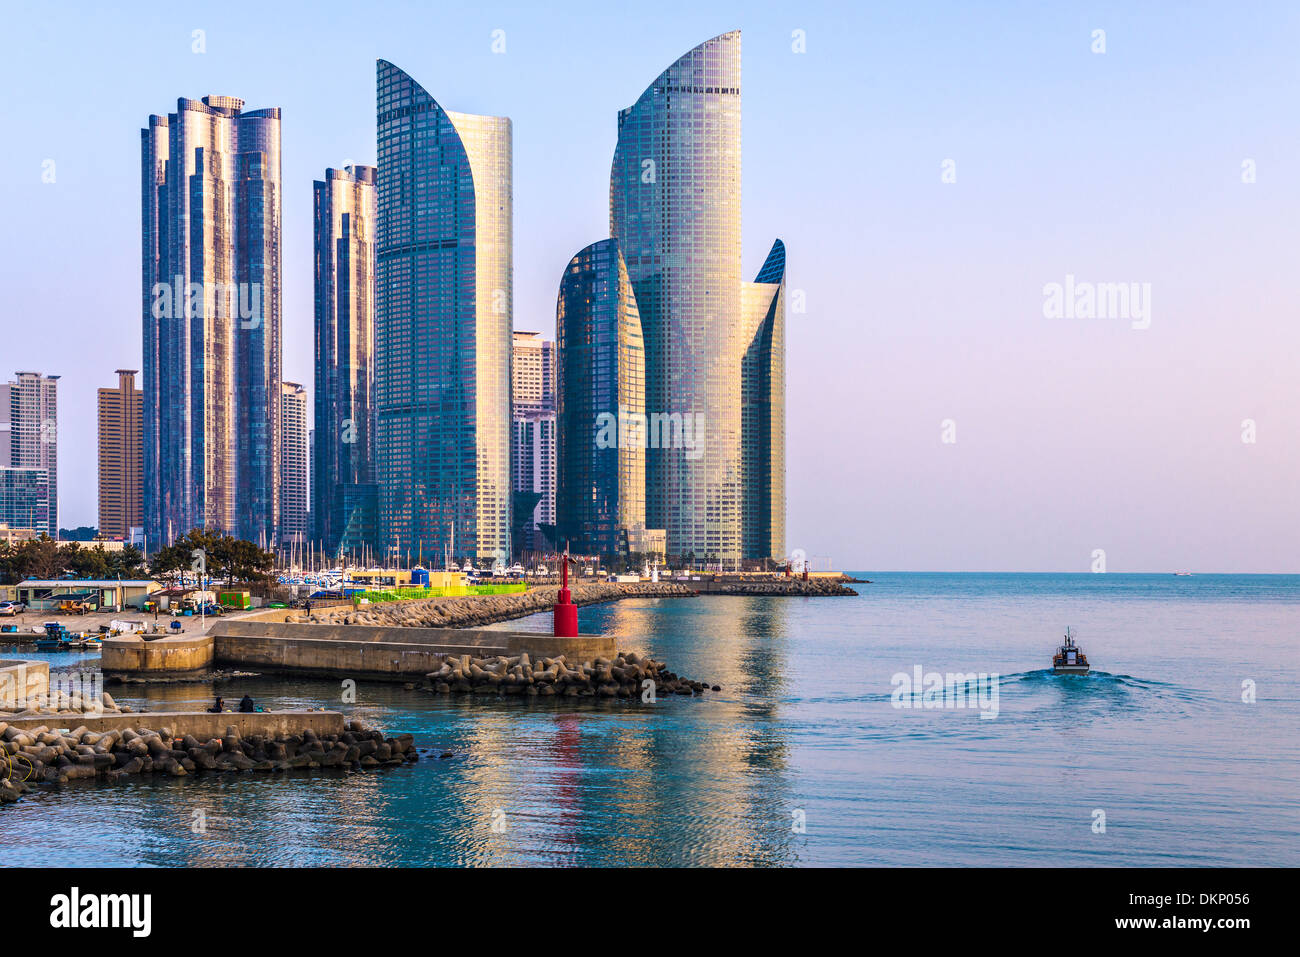 Busan, Corée du Sud dans le district urbain de Haeundae. Photo Stock